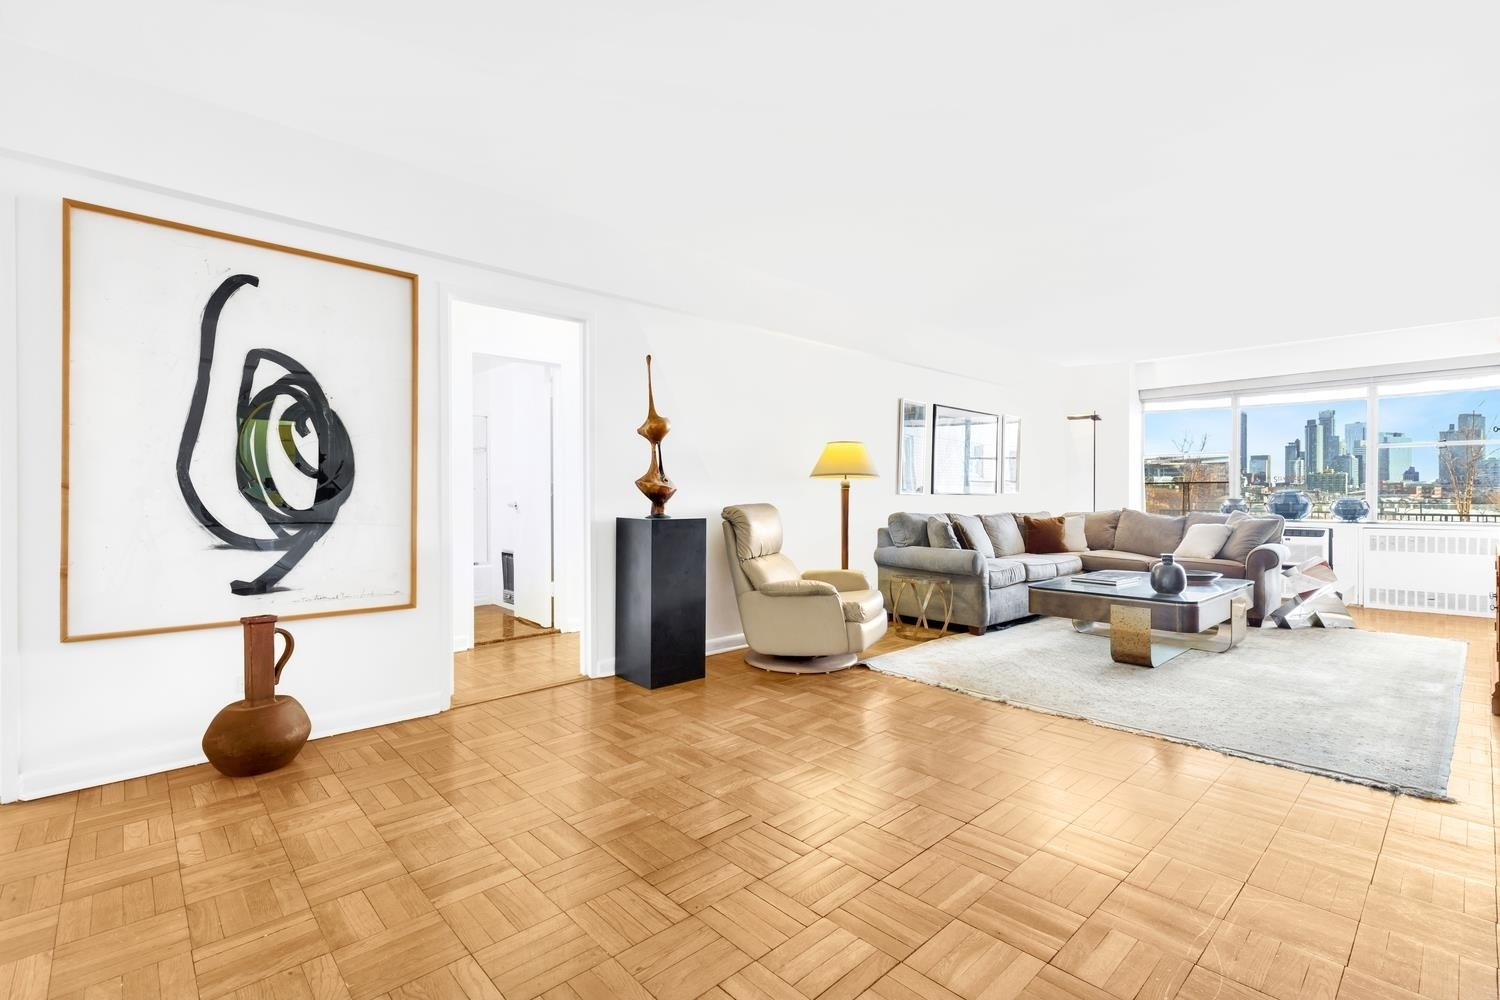 Property at Cannon Point North, 25 SUTTON PL S, 2K Sutton Place, New York, NY 10022